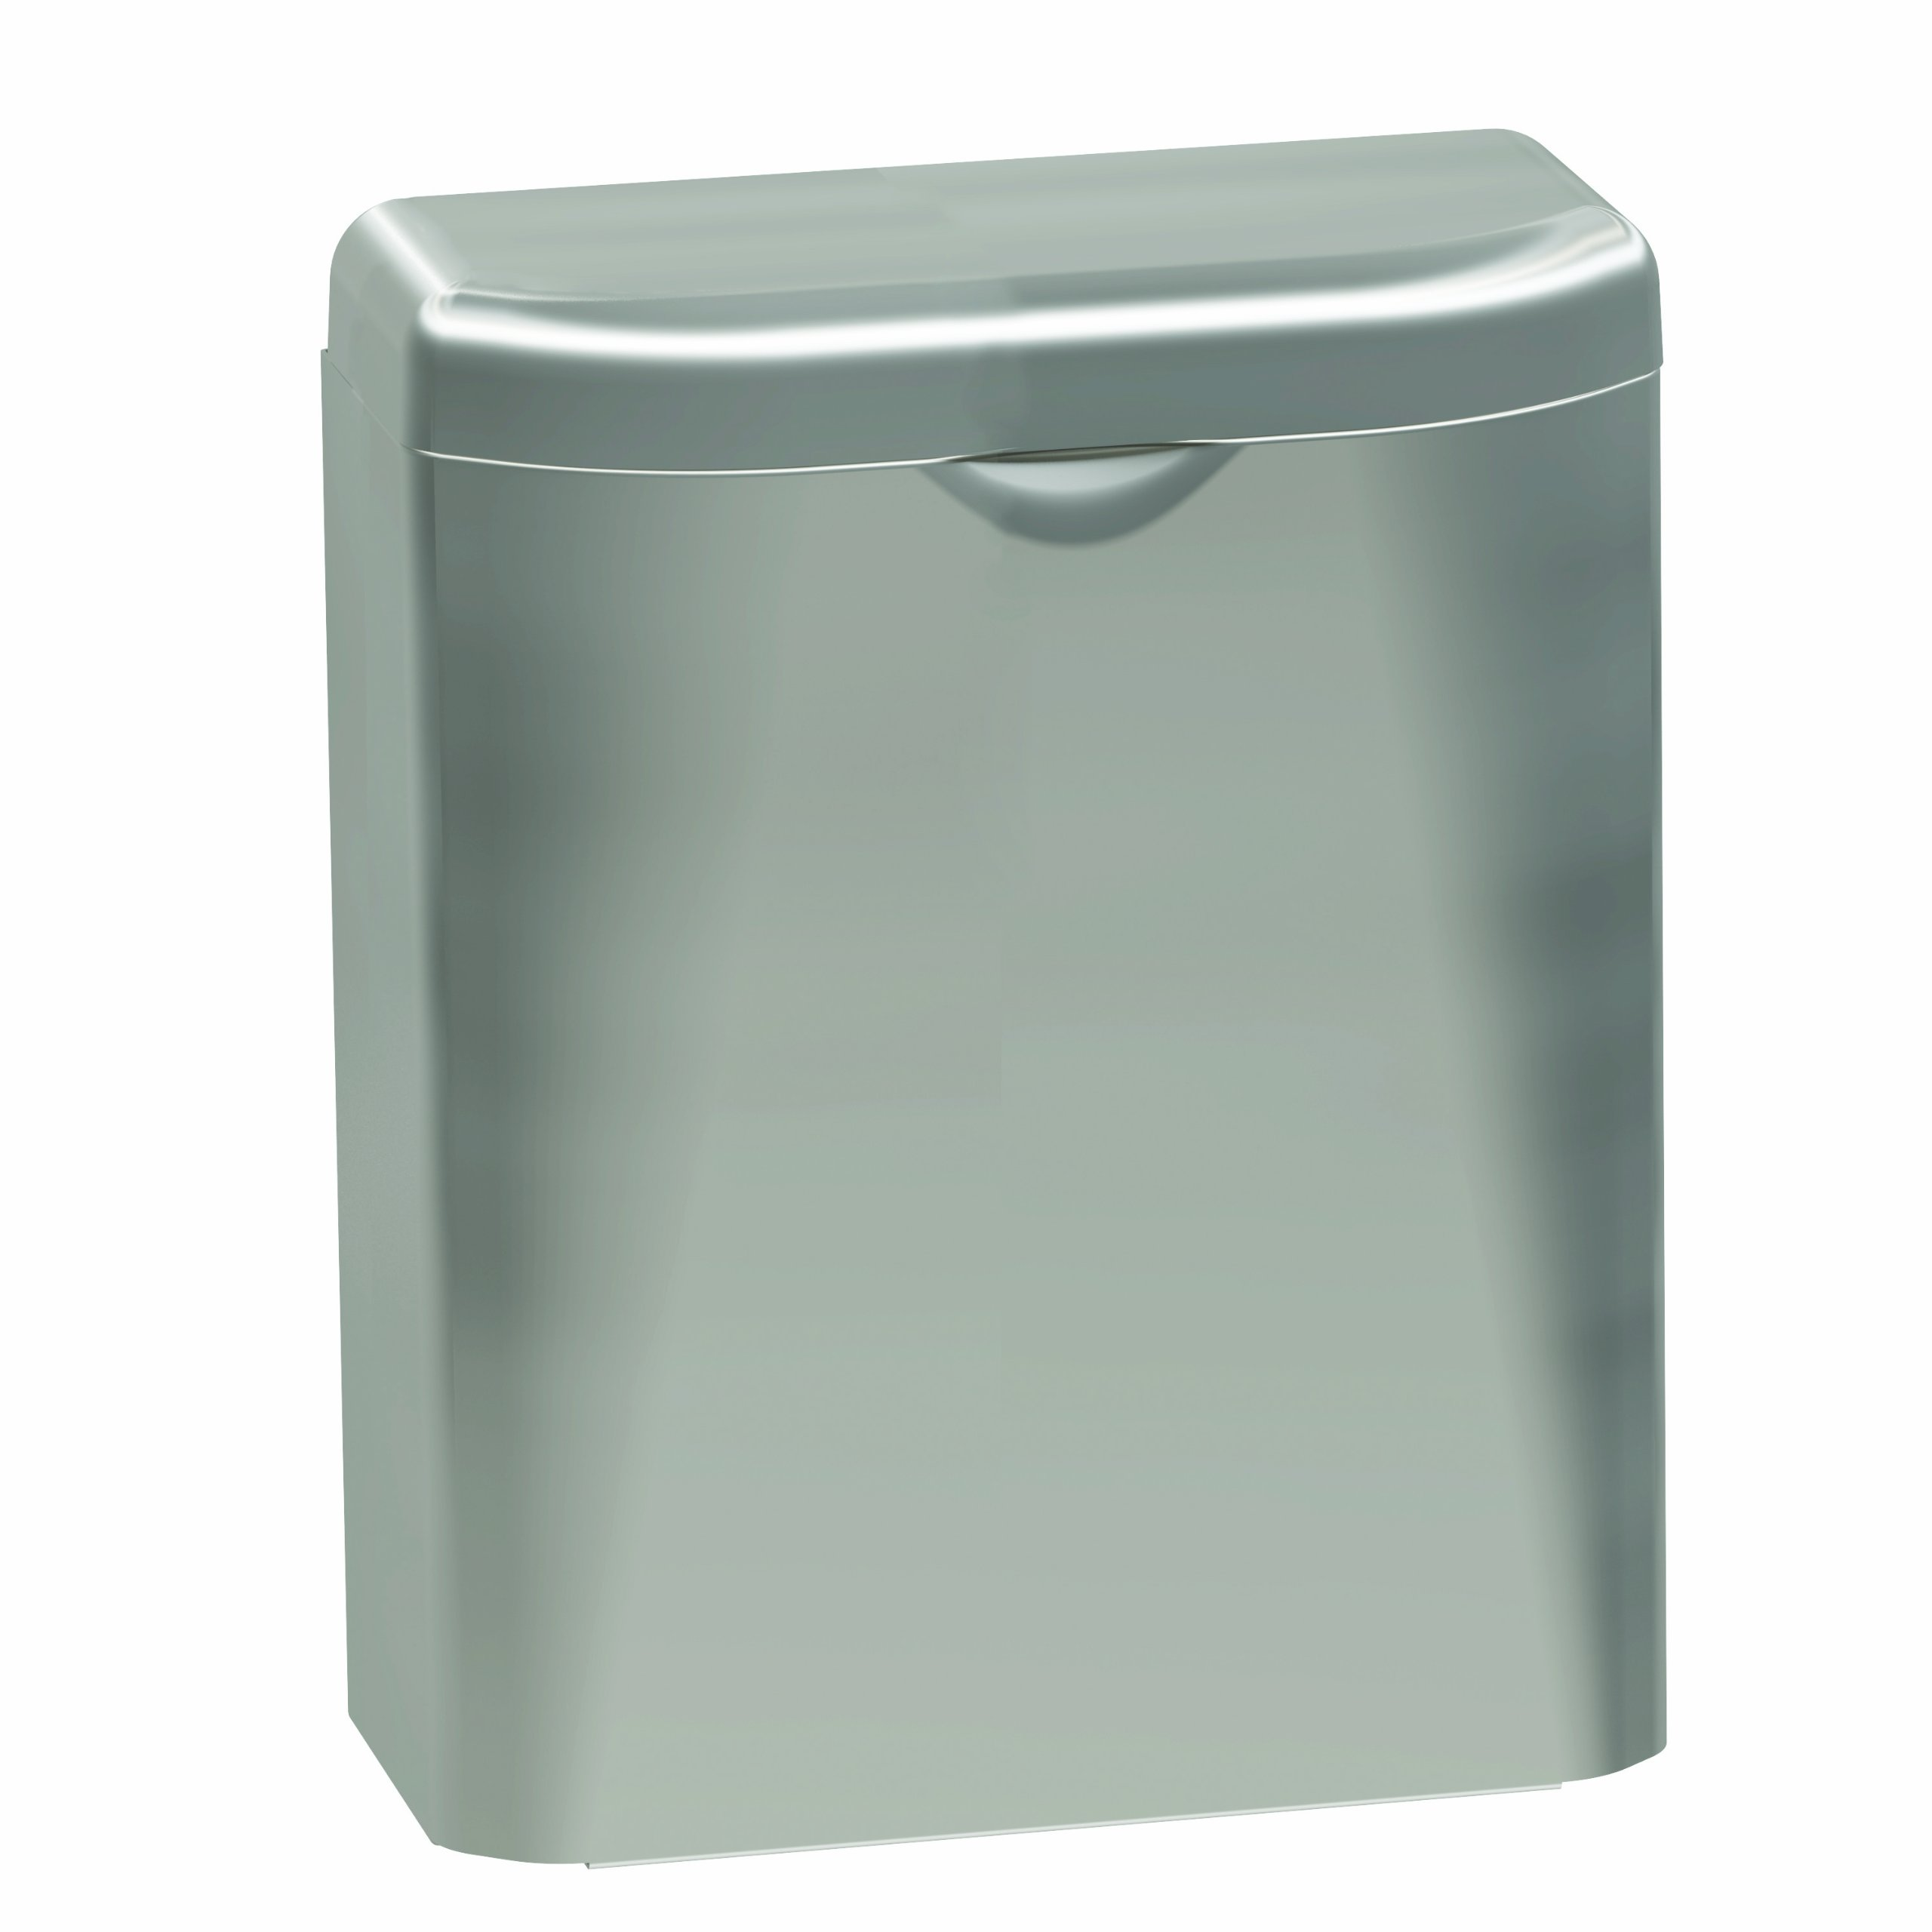 Bradley 4A10-110000 Diplomat Stainless Steel Surface Mounted Napkin Disposal, 8'' Width x 10-1/16'' Height x 3-7/8'' Depth by Bradley